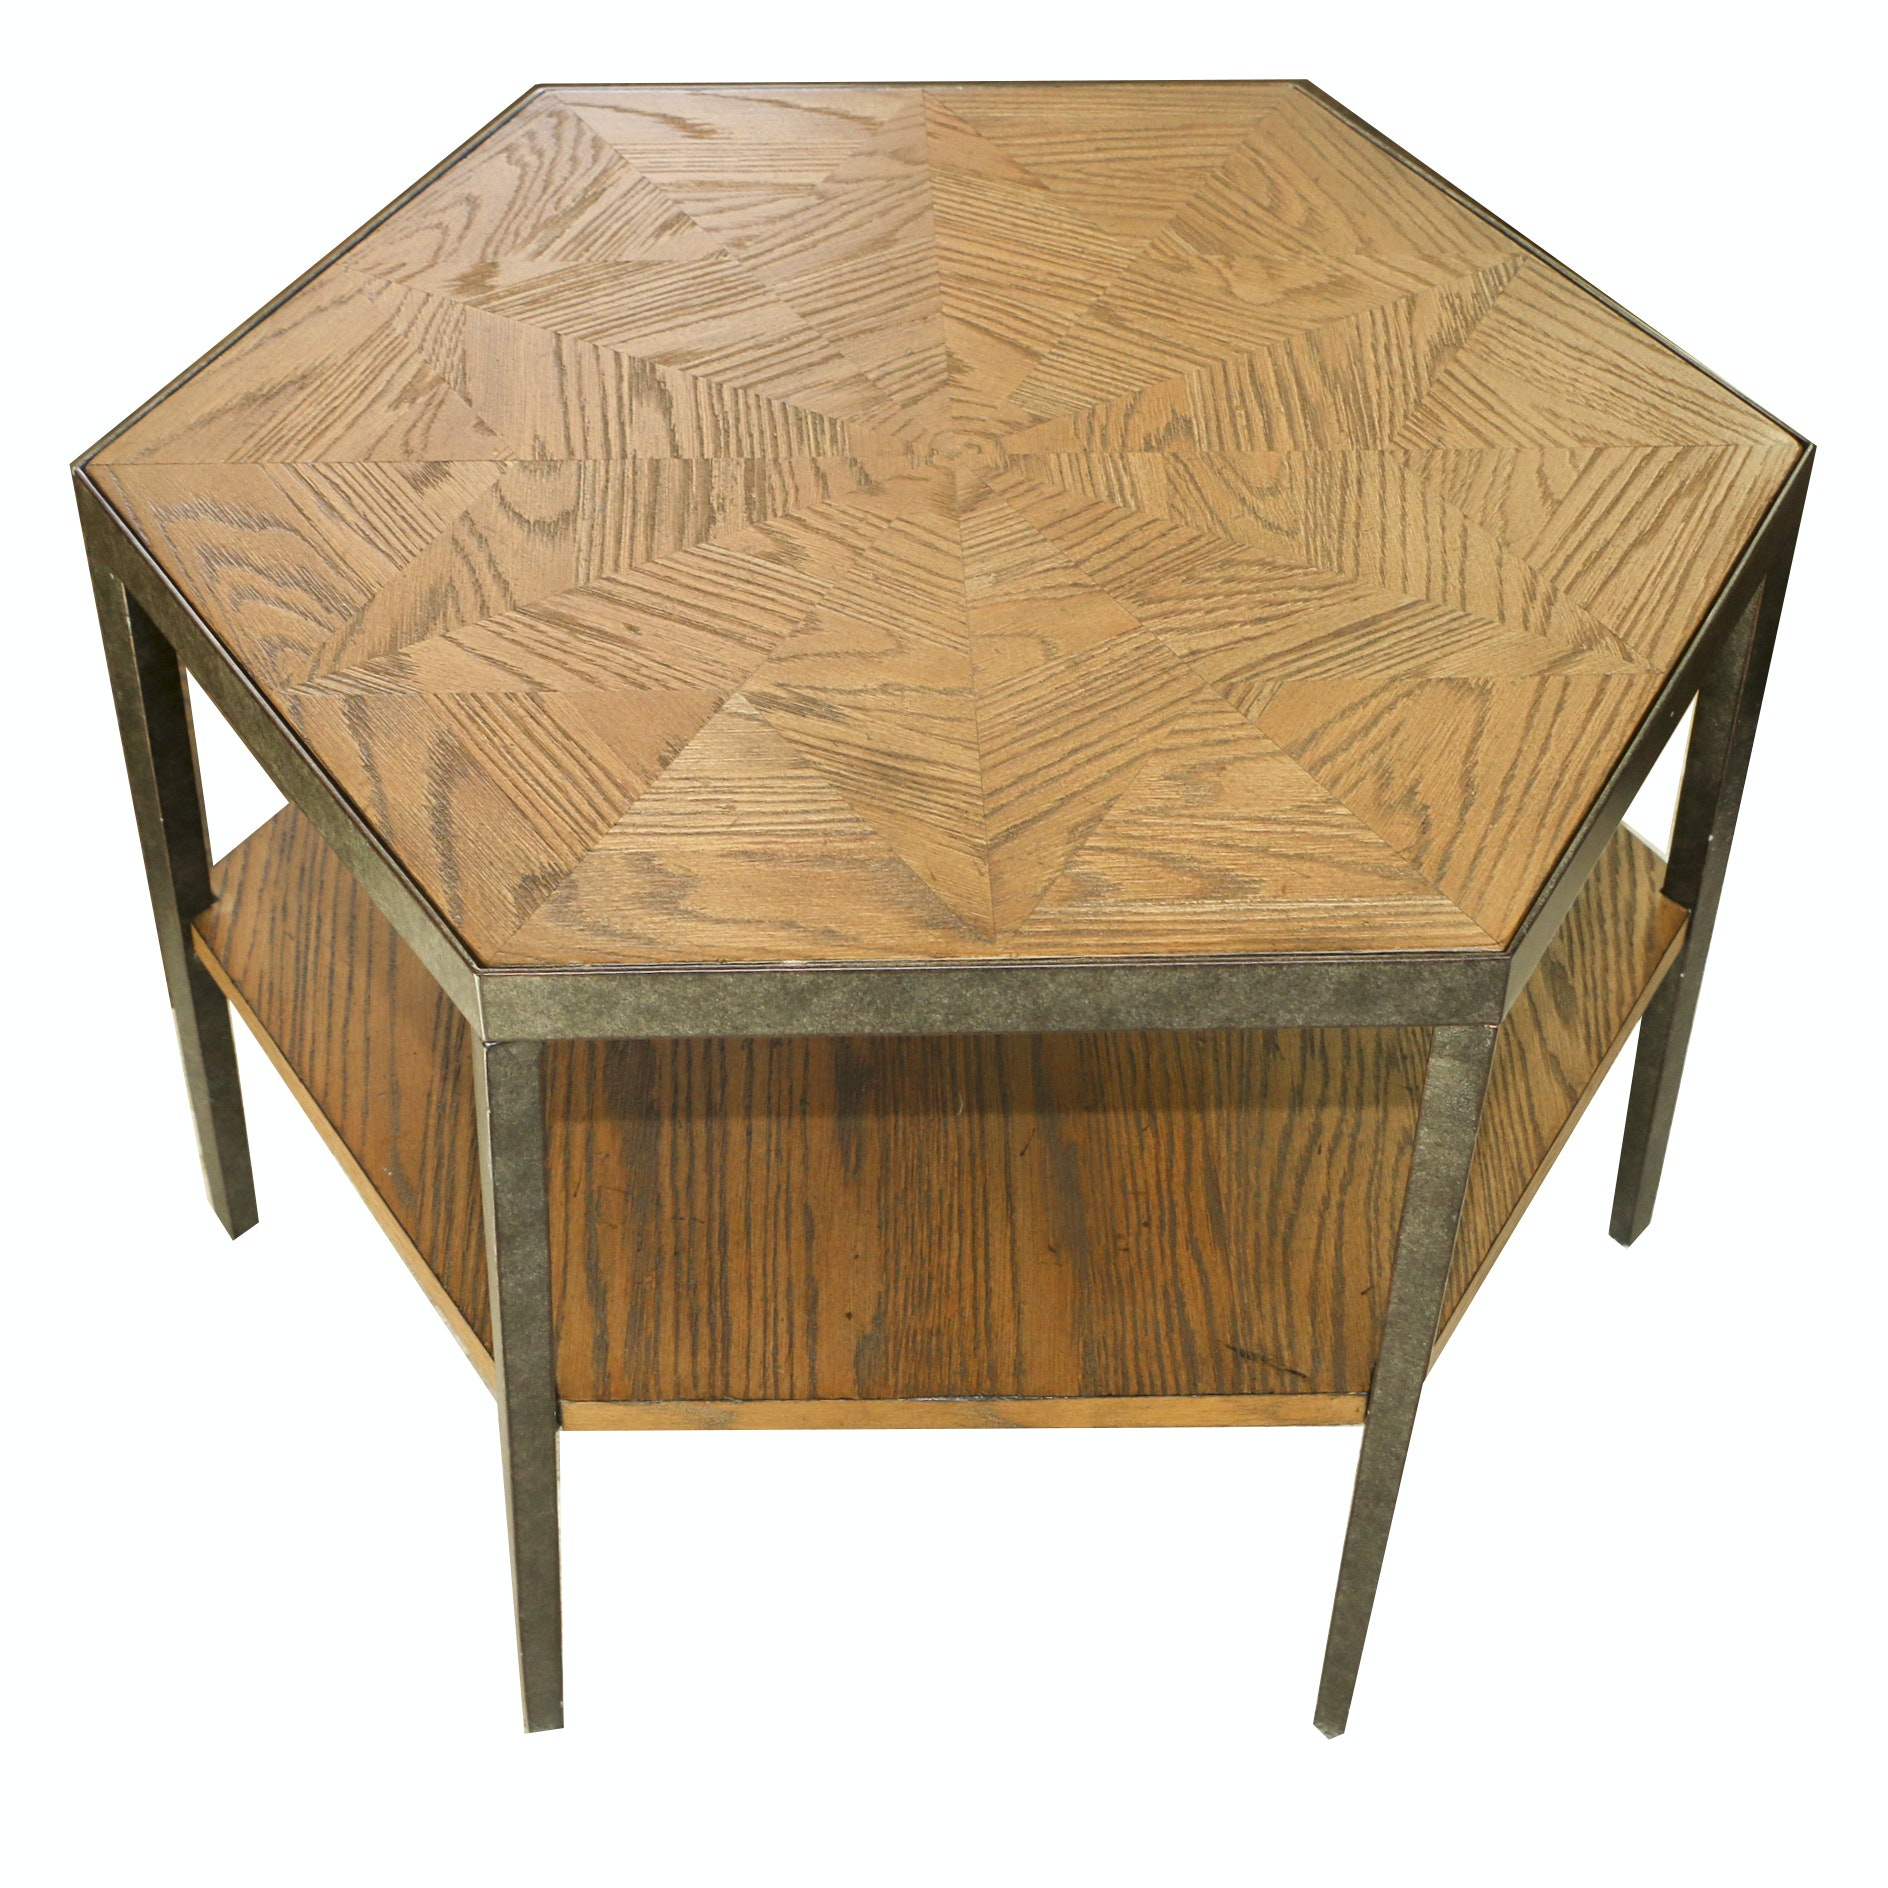 Contemporary Oak and Metal Hegaxonal End Table